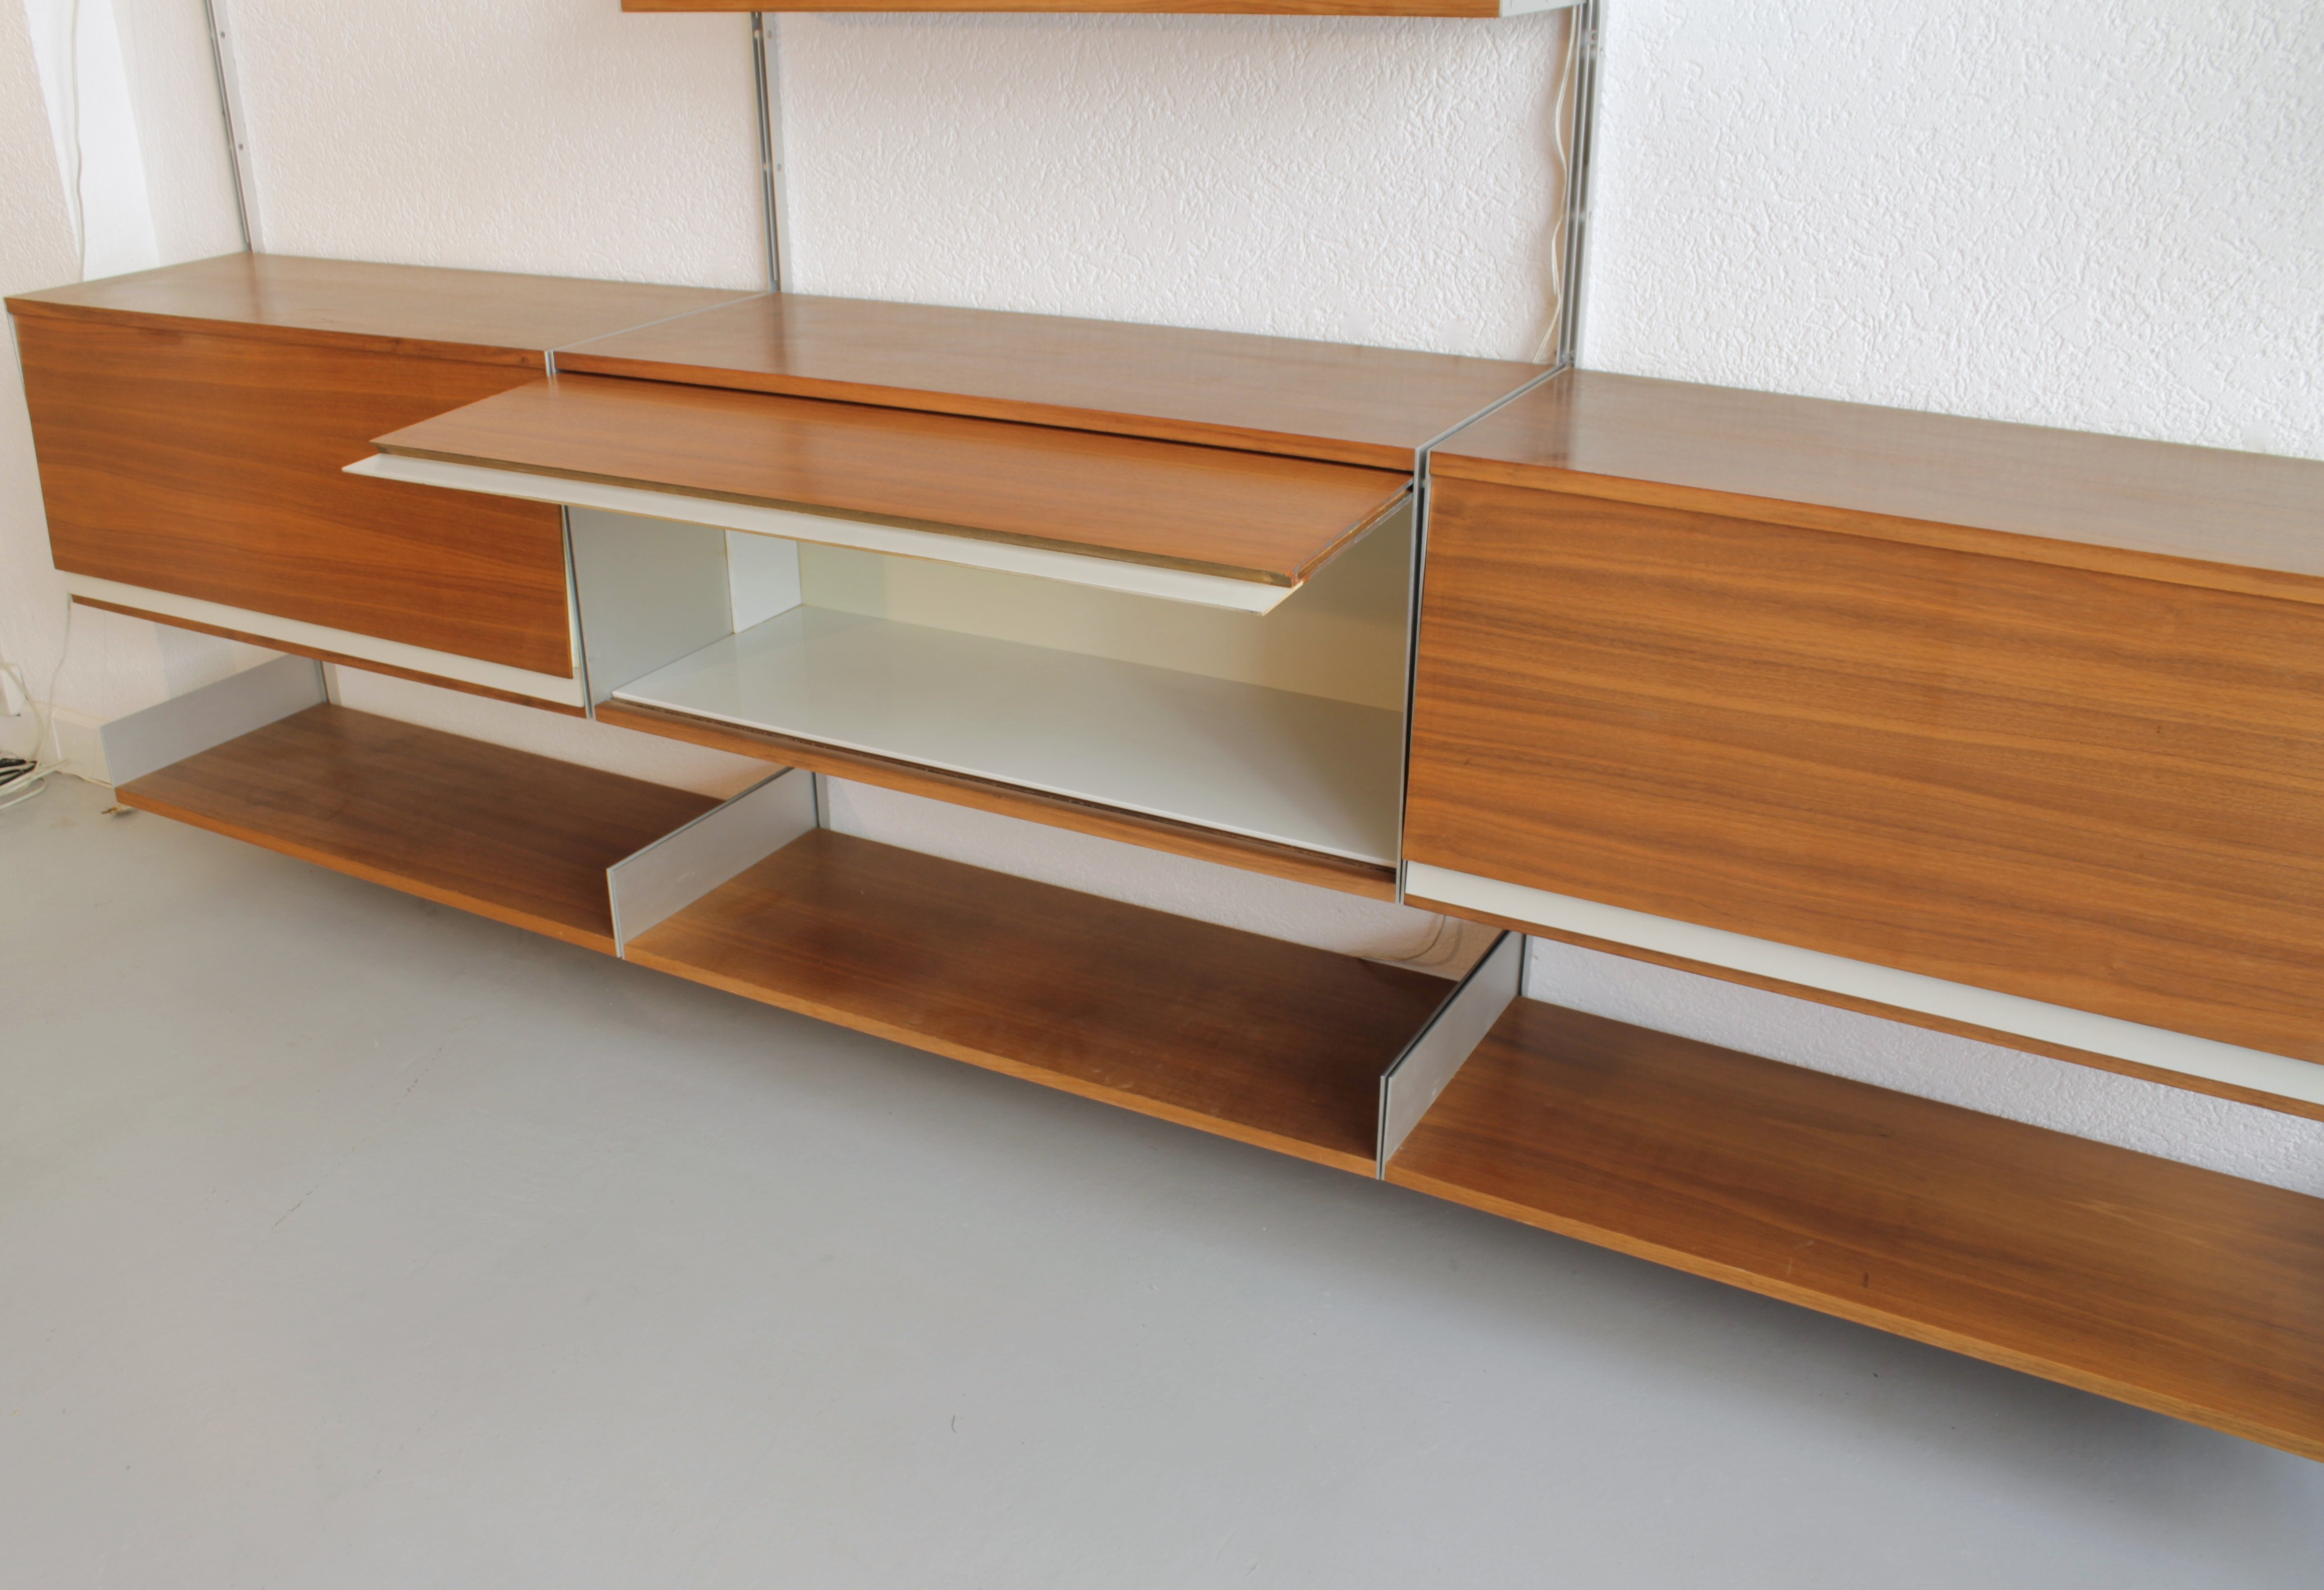 606 universal system by dieter rams 1960s previous next